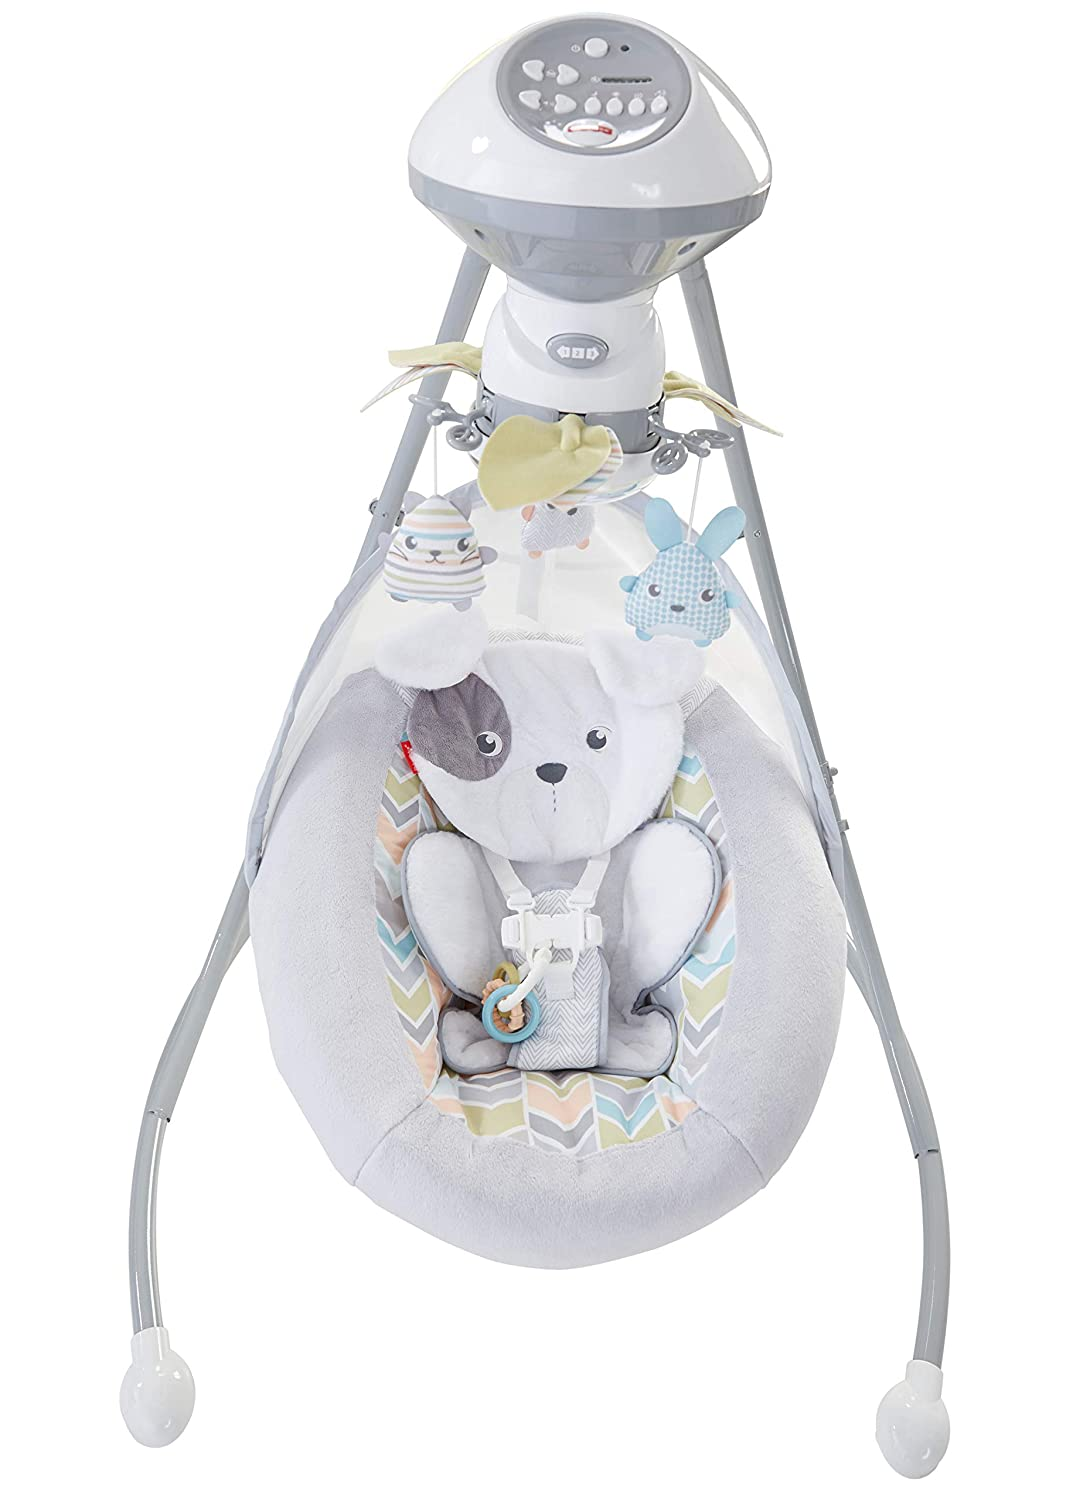 9 Best Fisher-Price Baby Swings Reviews of 2021 10